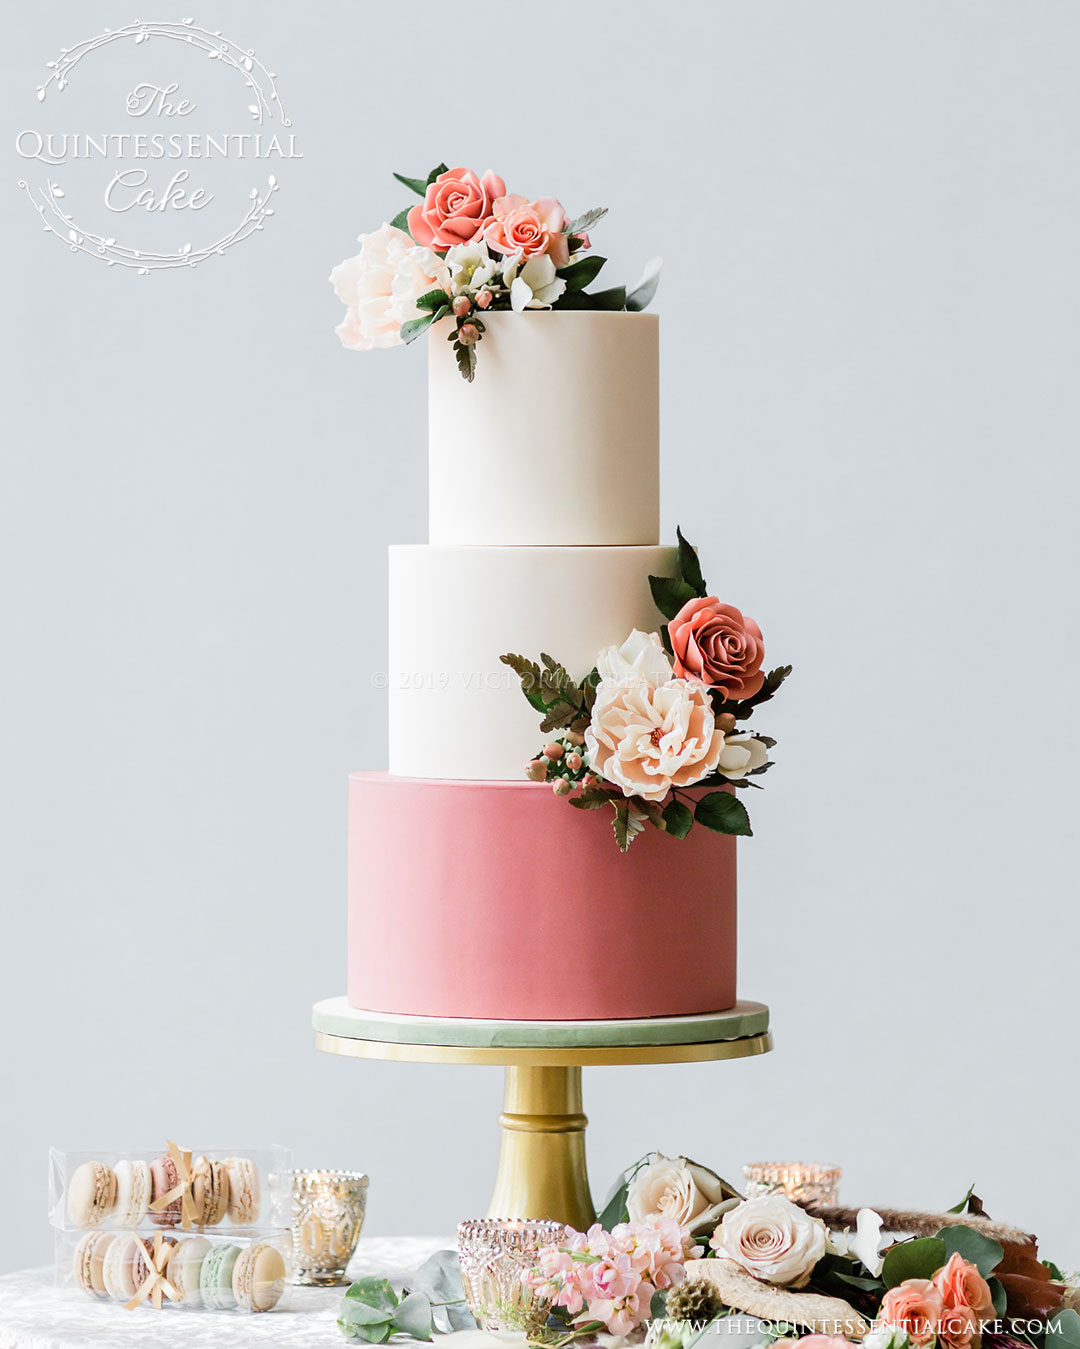 Chicago Style Weddings | The Celebration Society | Designers Challenge 2020 | The Quintessential Cake | Chicago | Luxury Wedding Cakes | Hotel Palomar